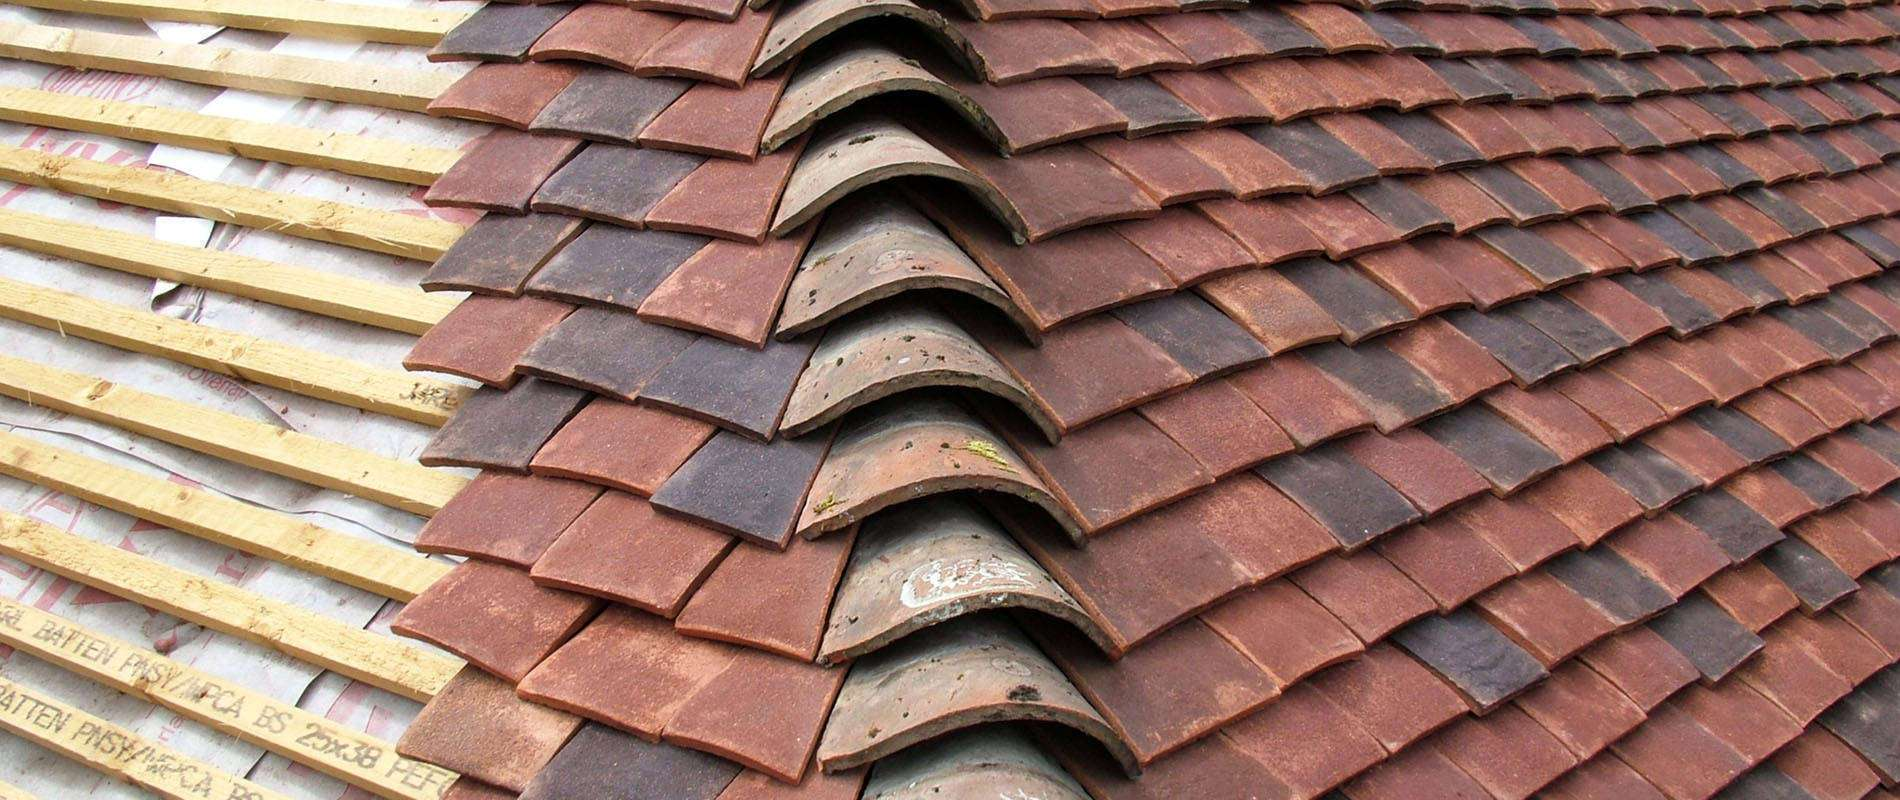 hand made clay roof tiles slide 5